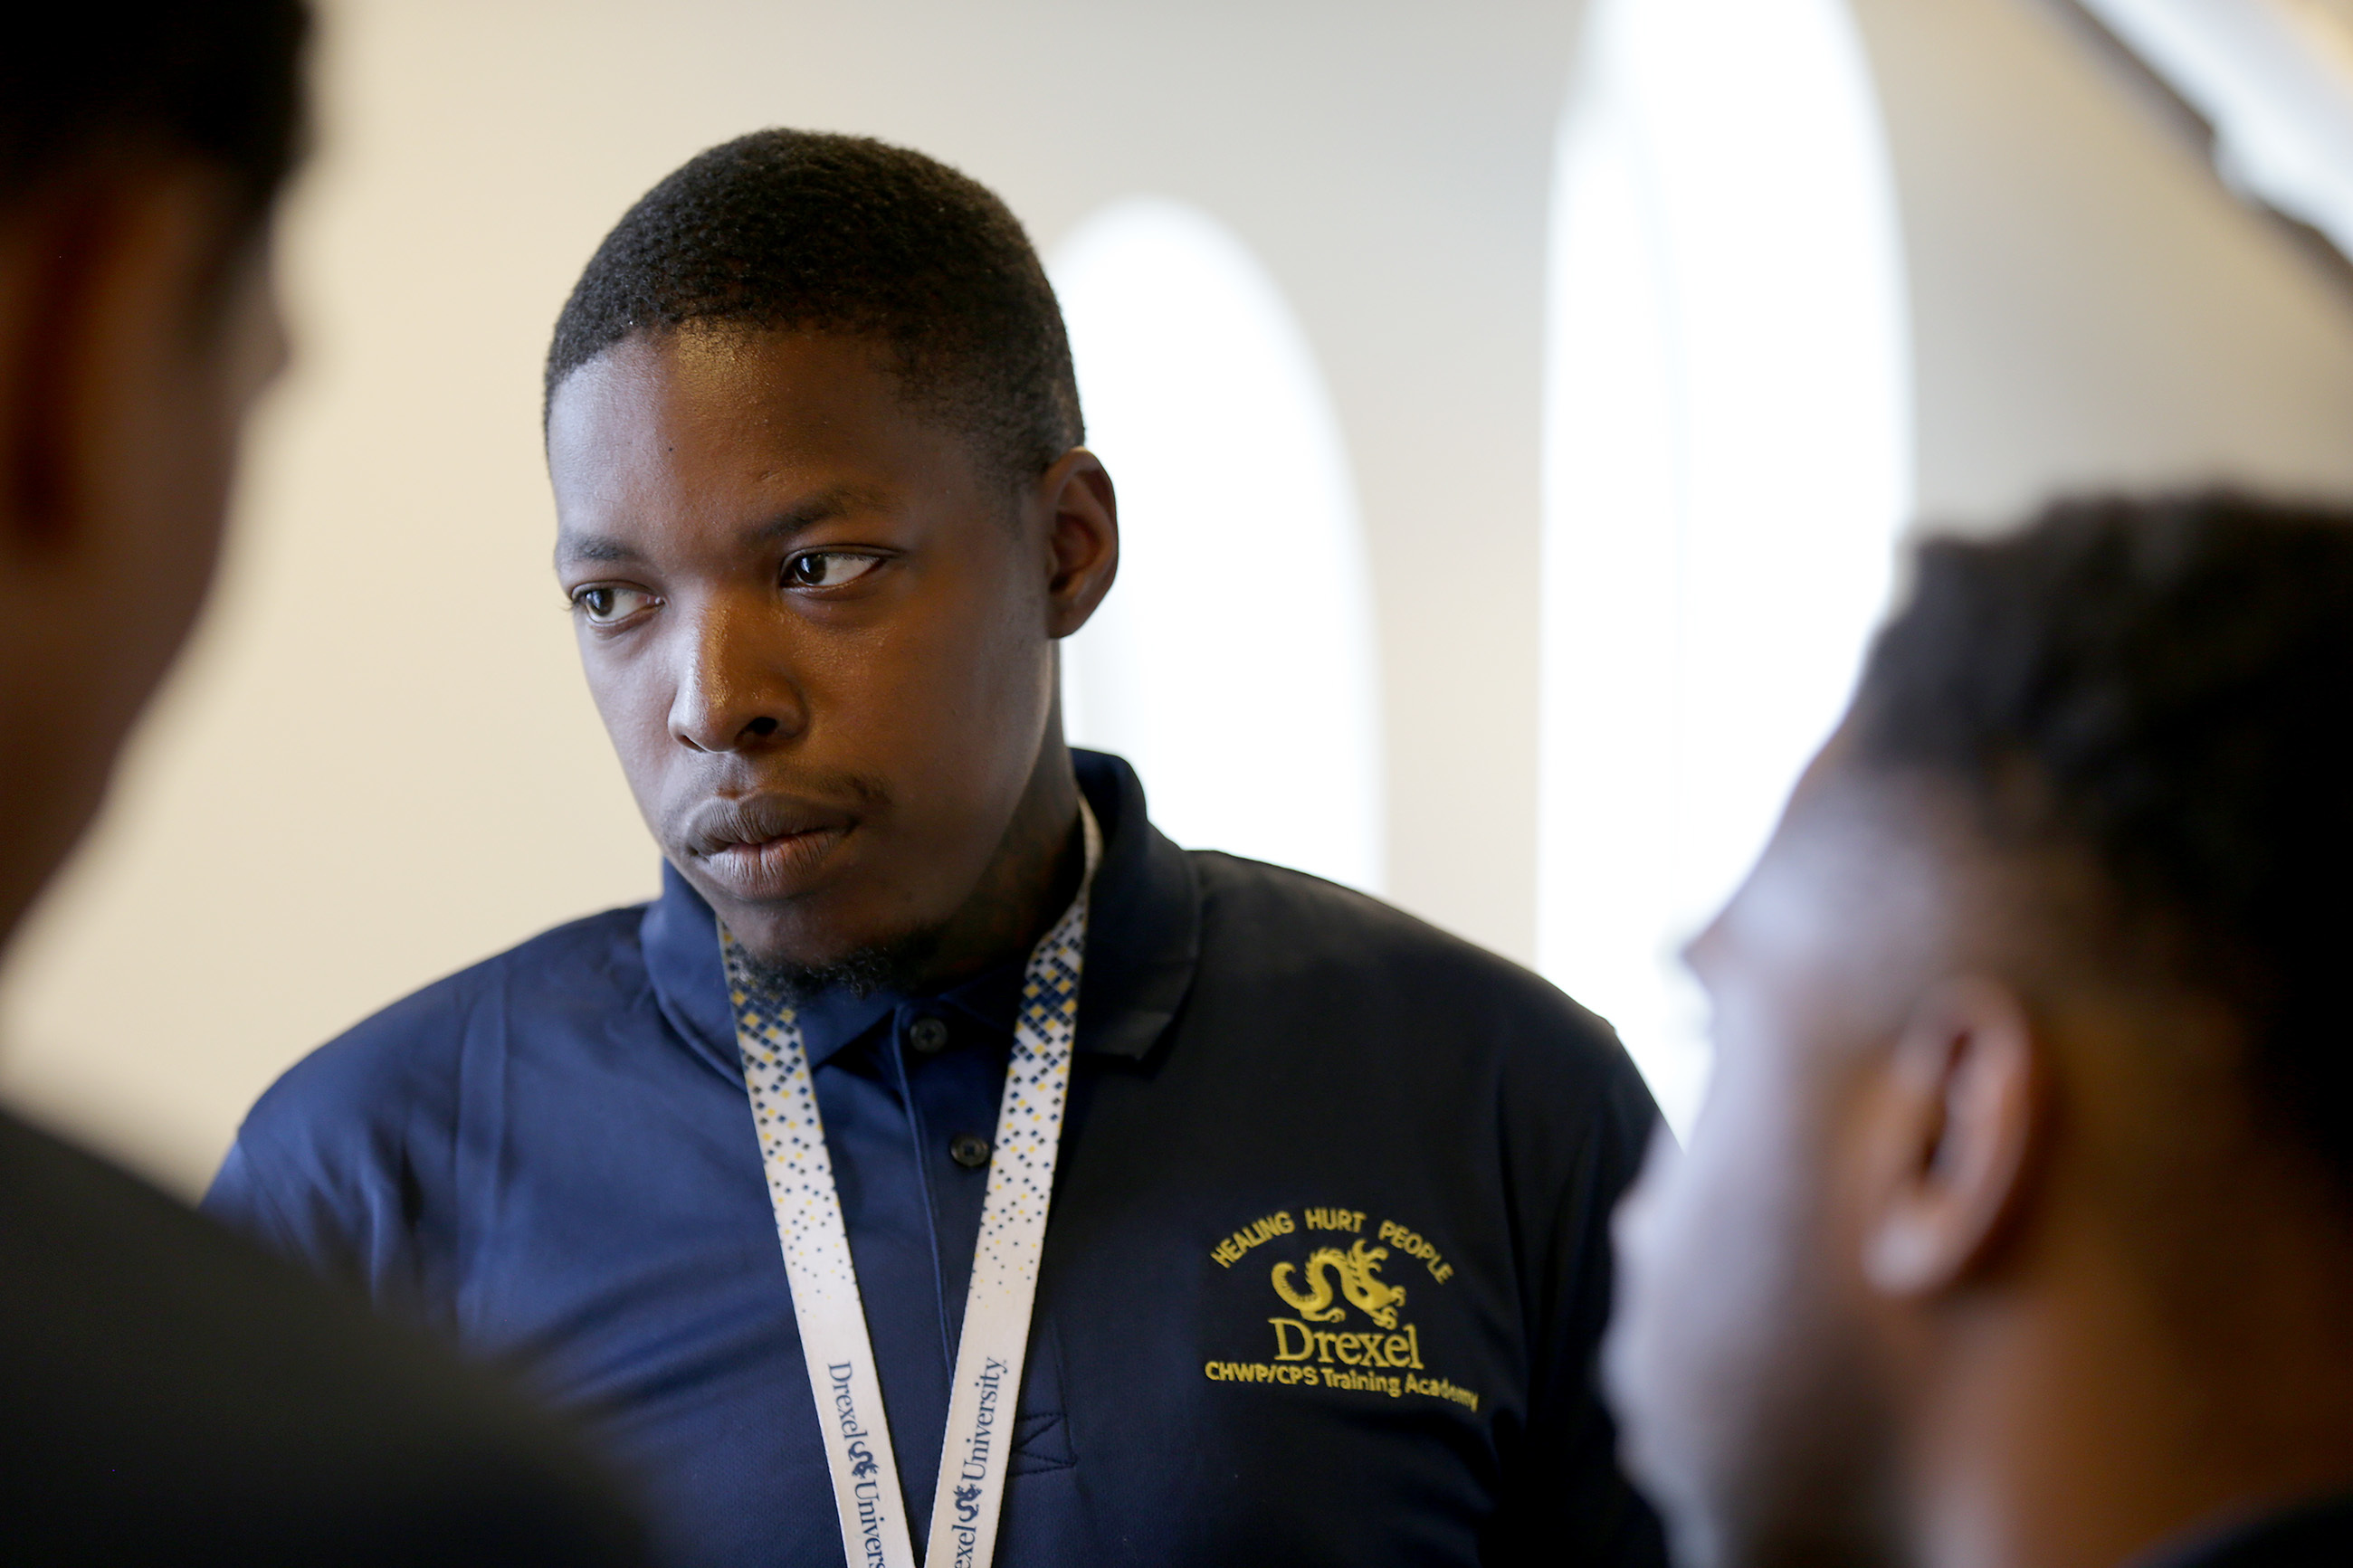 Anthony Miles, center, talks with his classmates before the Drexel University CHWP/CPS Training Academy graduation in Philadelphia, PA on July 12, 2018.